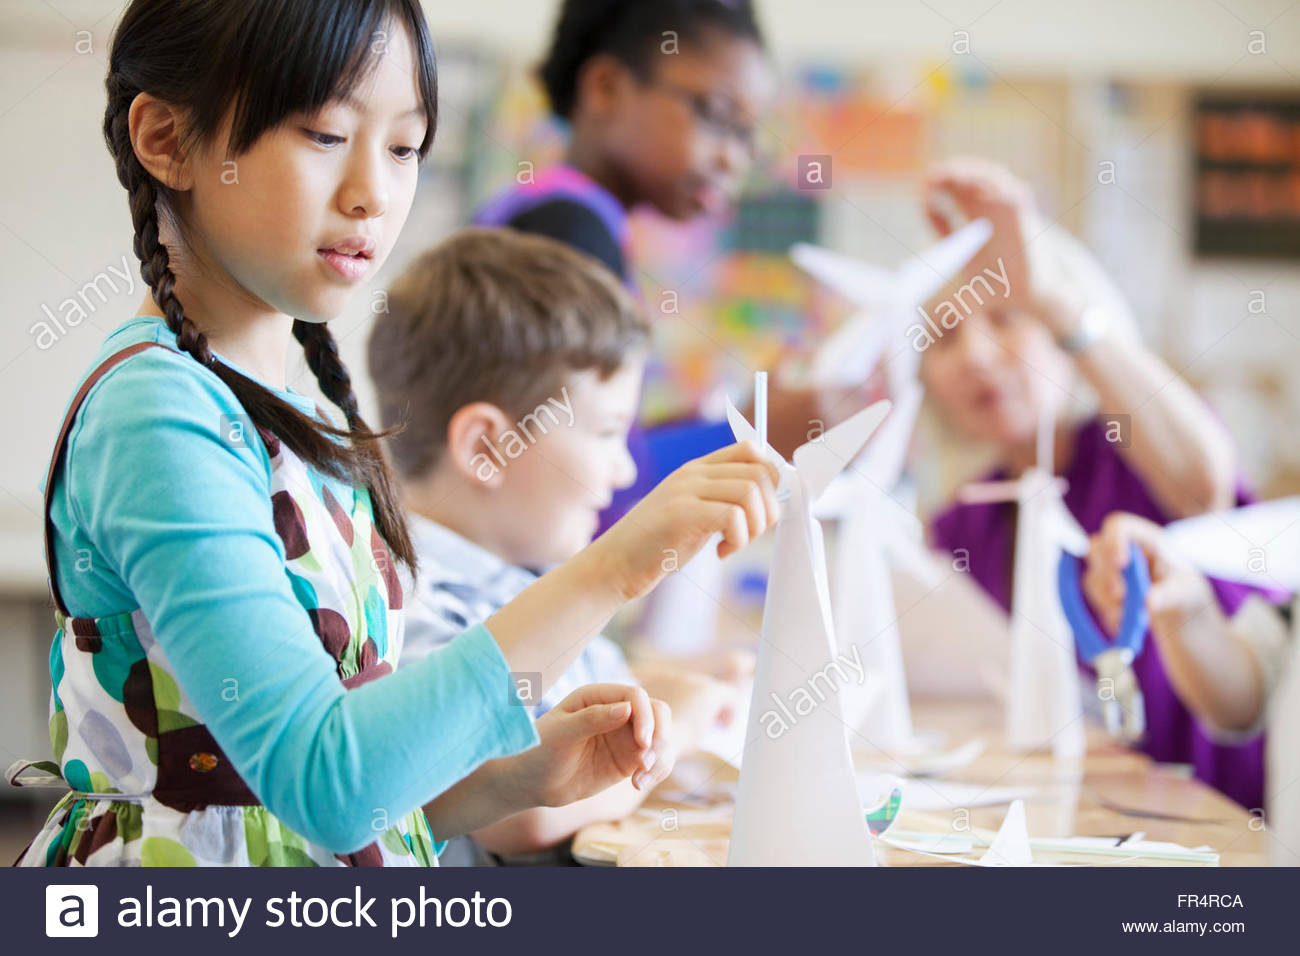 elementary class creating wind turbine models - Stock Image